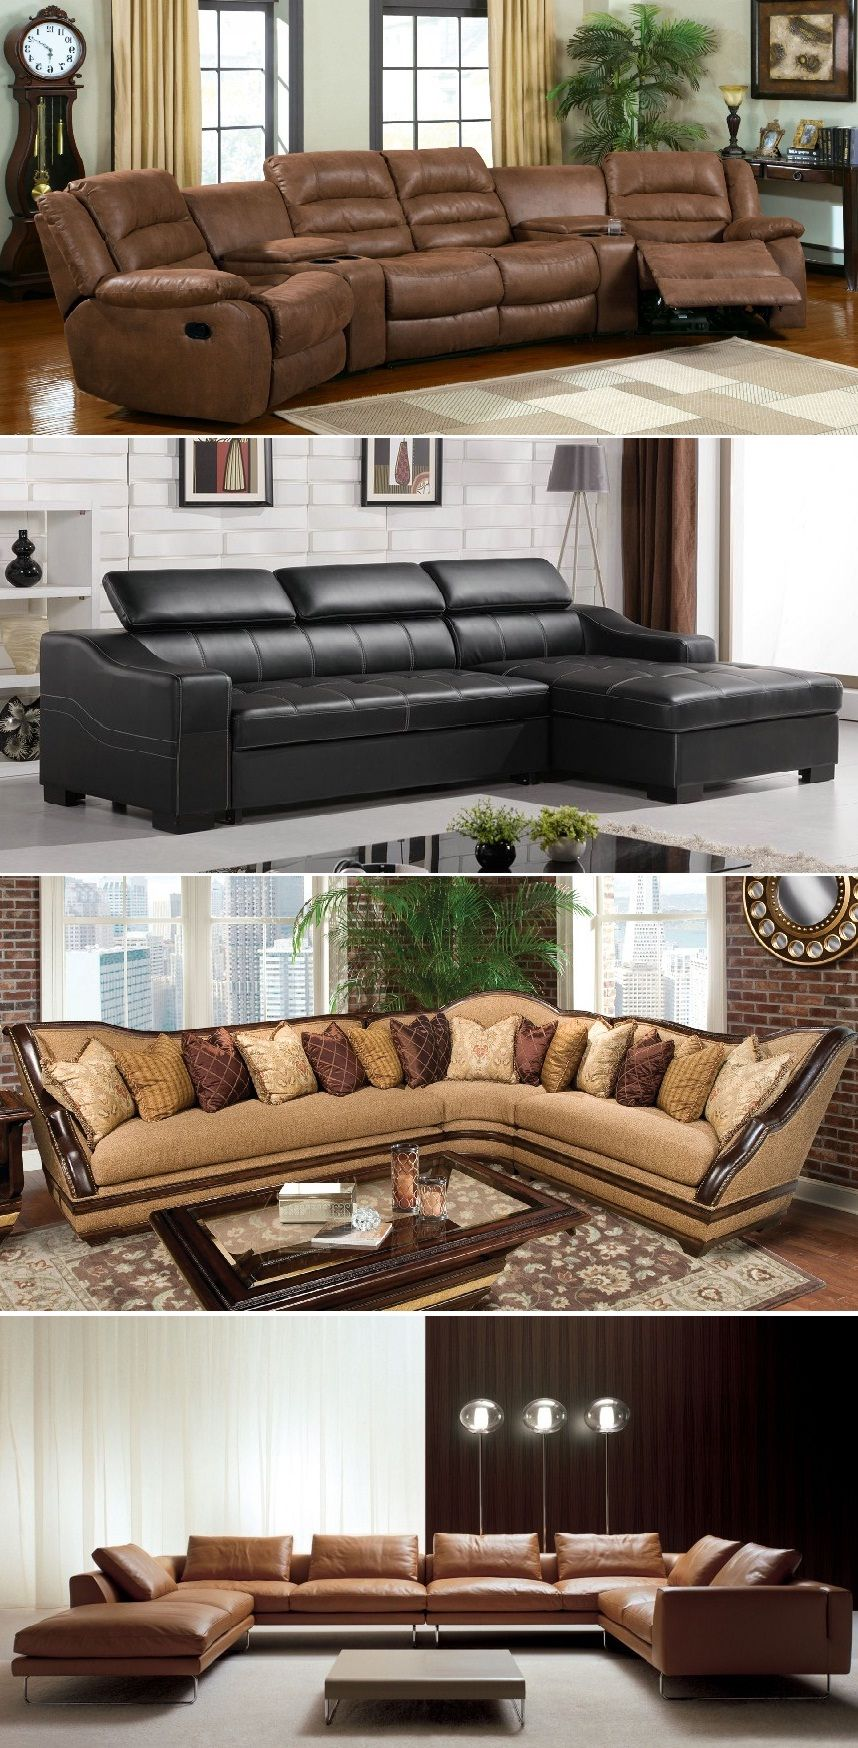 Most Comfortable Sectional Sofa 2019